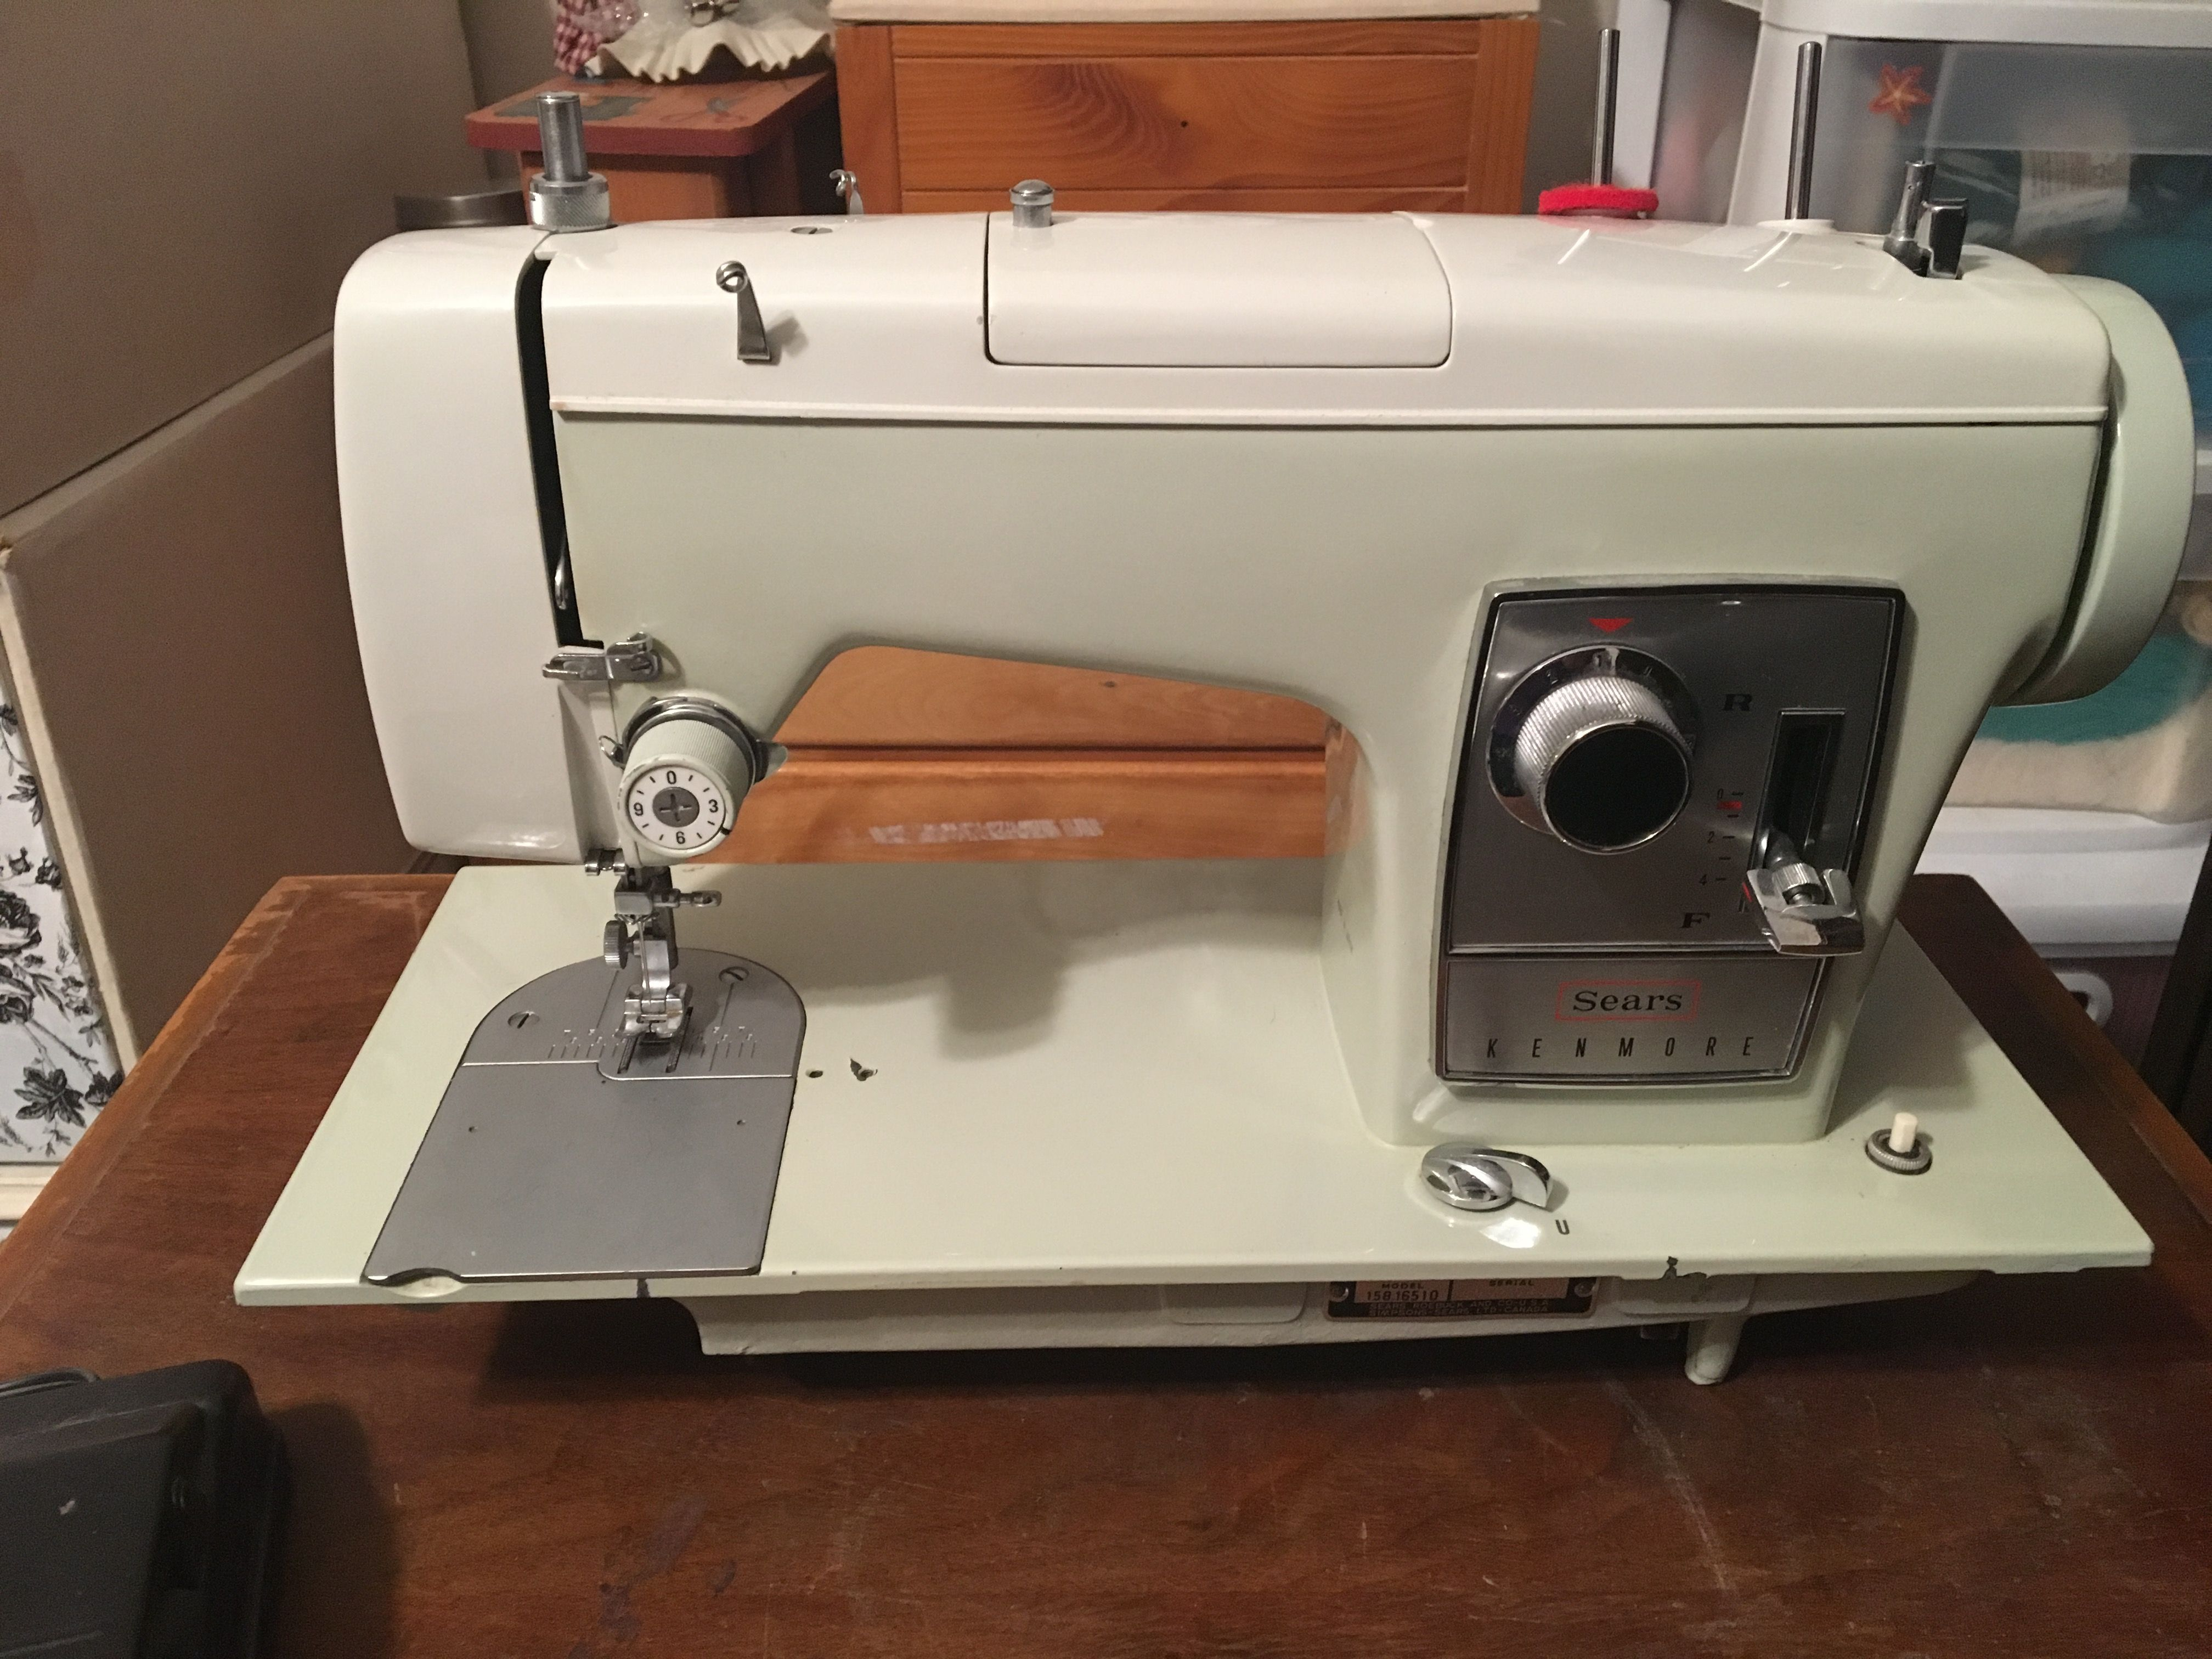 Pin by Faith Marston on My kenmore sewing machines